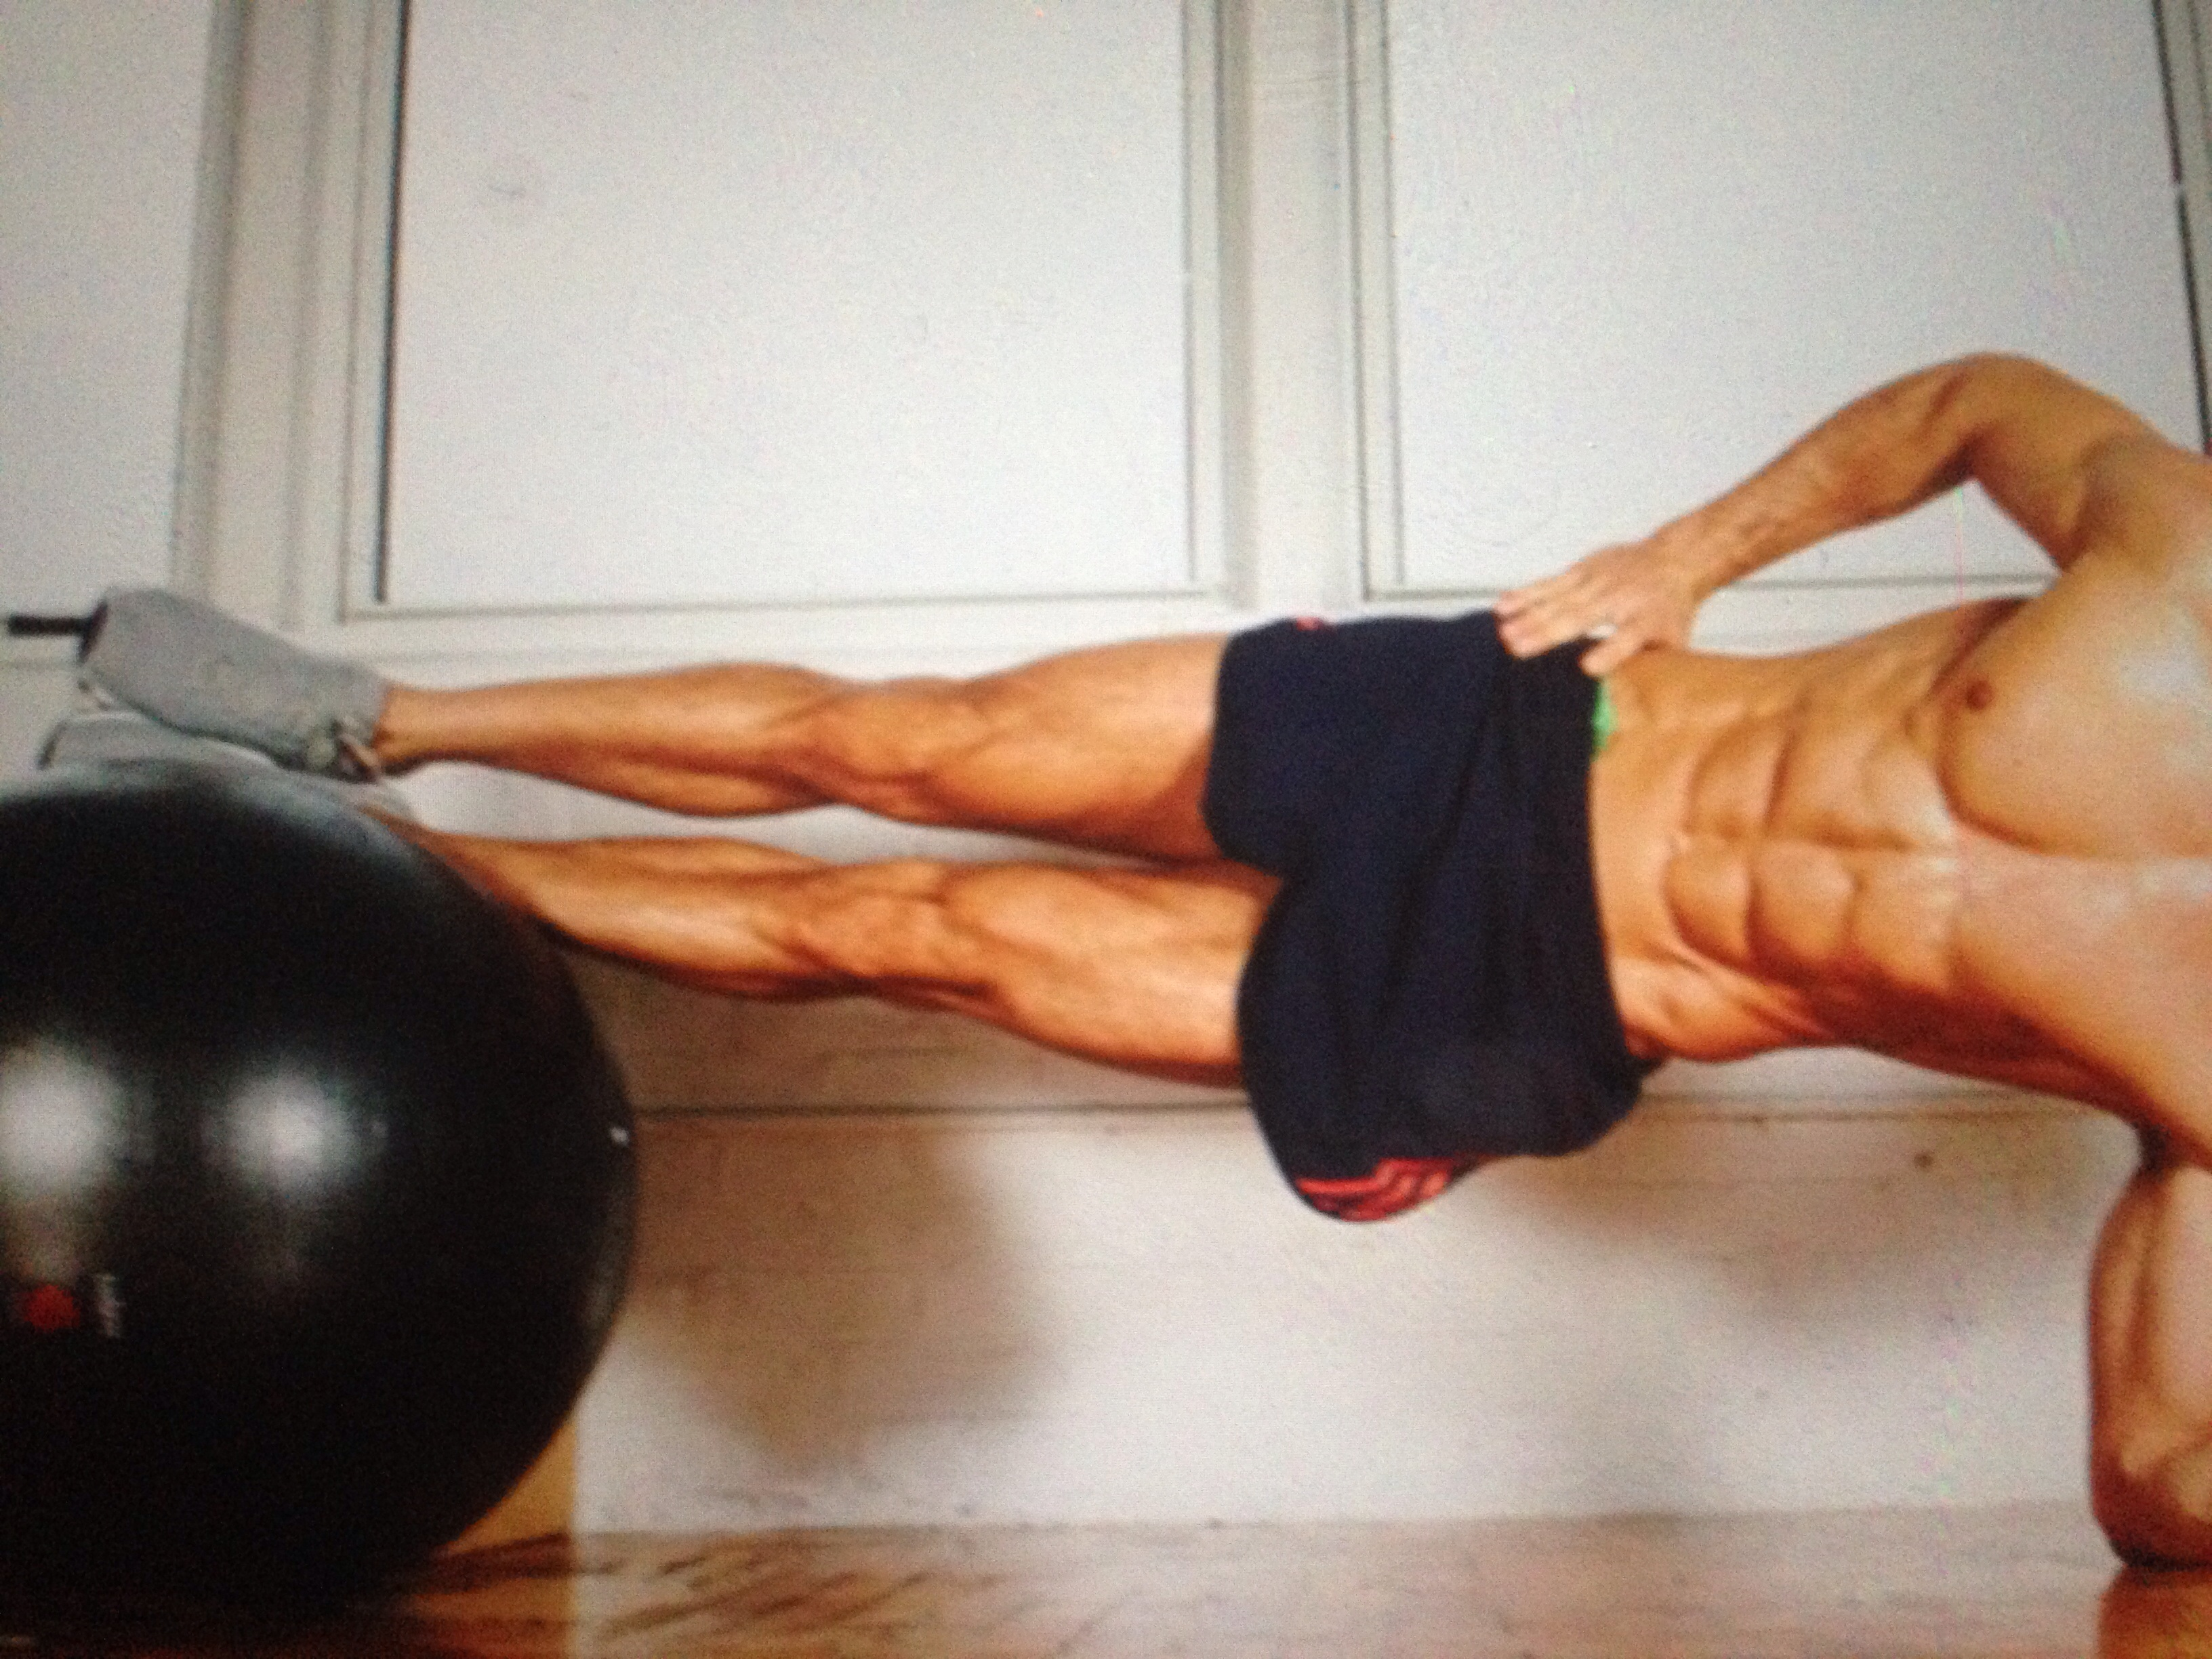 Help you with a workout routine